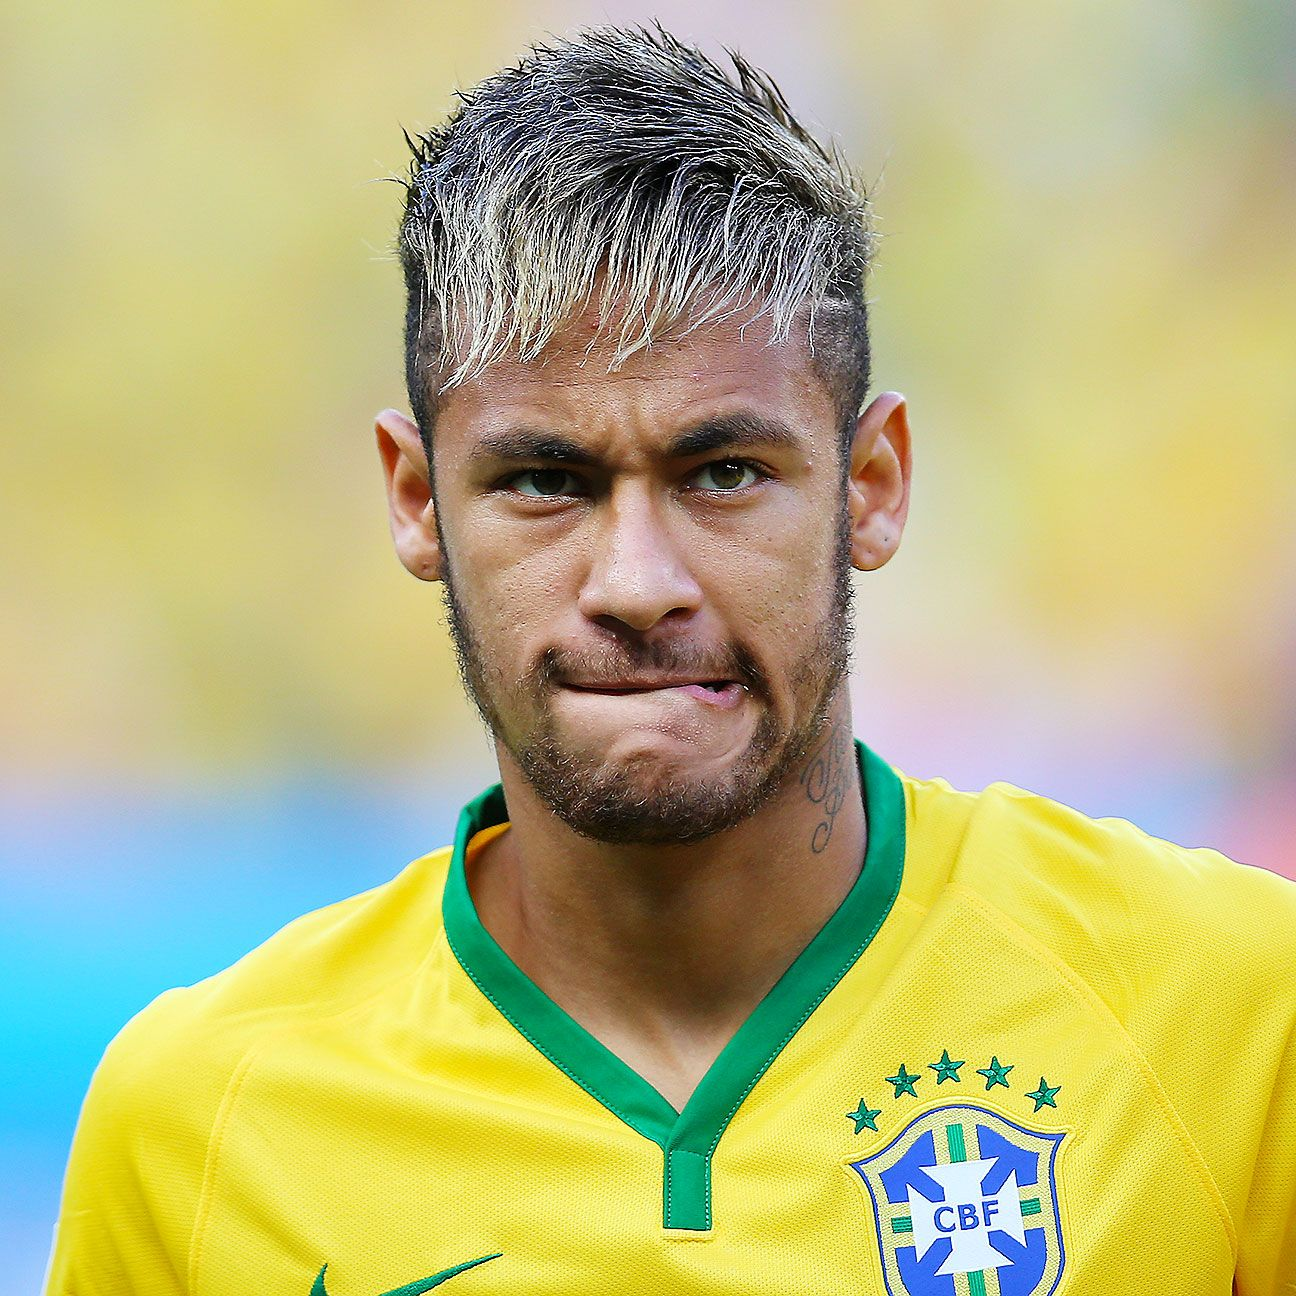 Obviously, Neymar will be the anchor for Brazil moving forward. But who will join him?